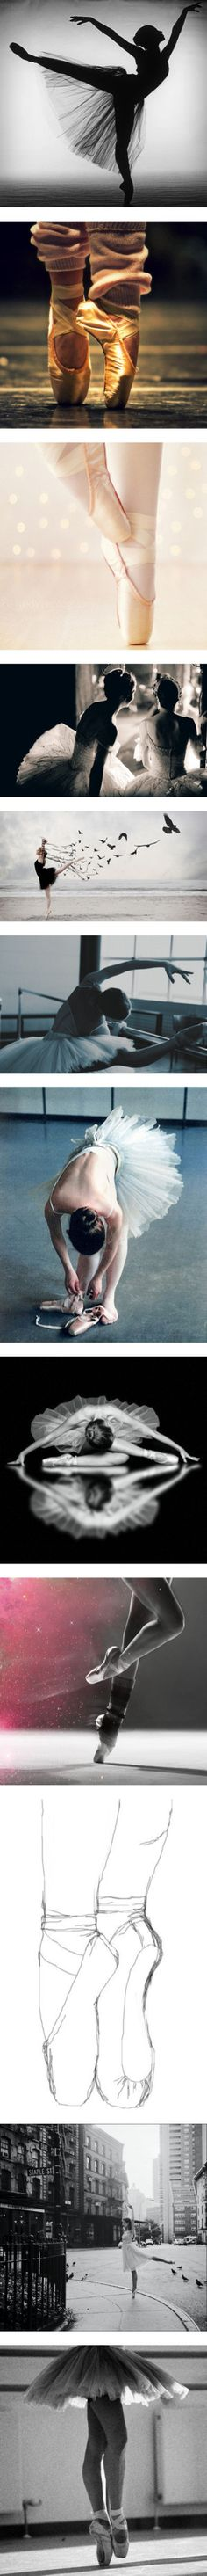 """Ballet/Dance"" by beforenightfalls1313 ❤ liked on Polyvore"